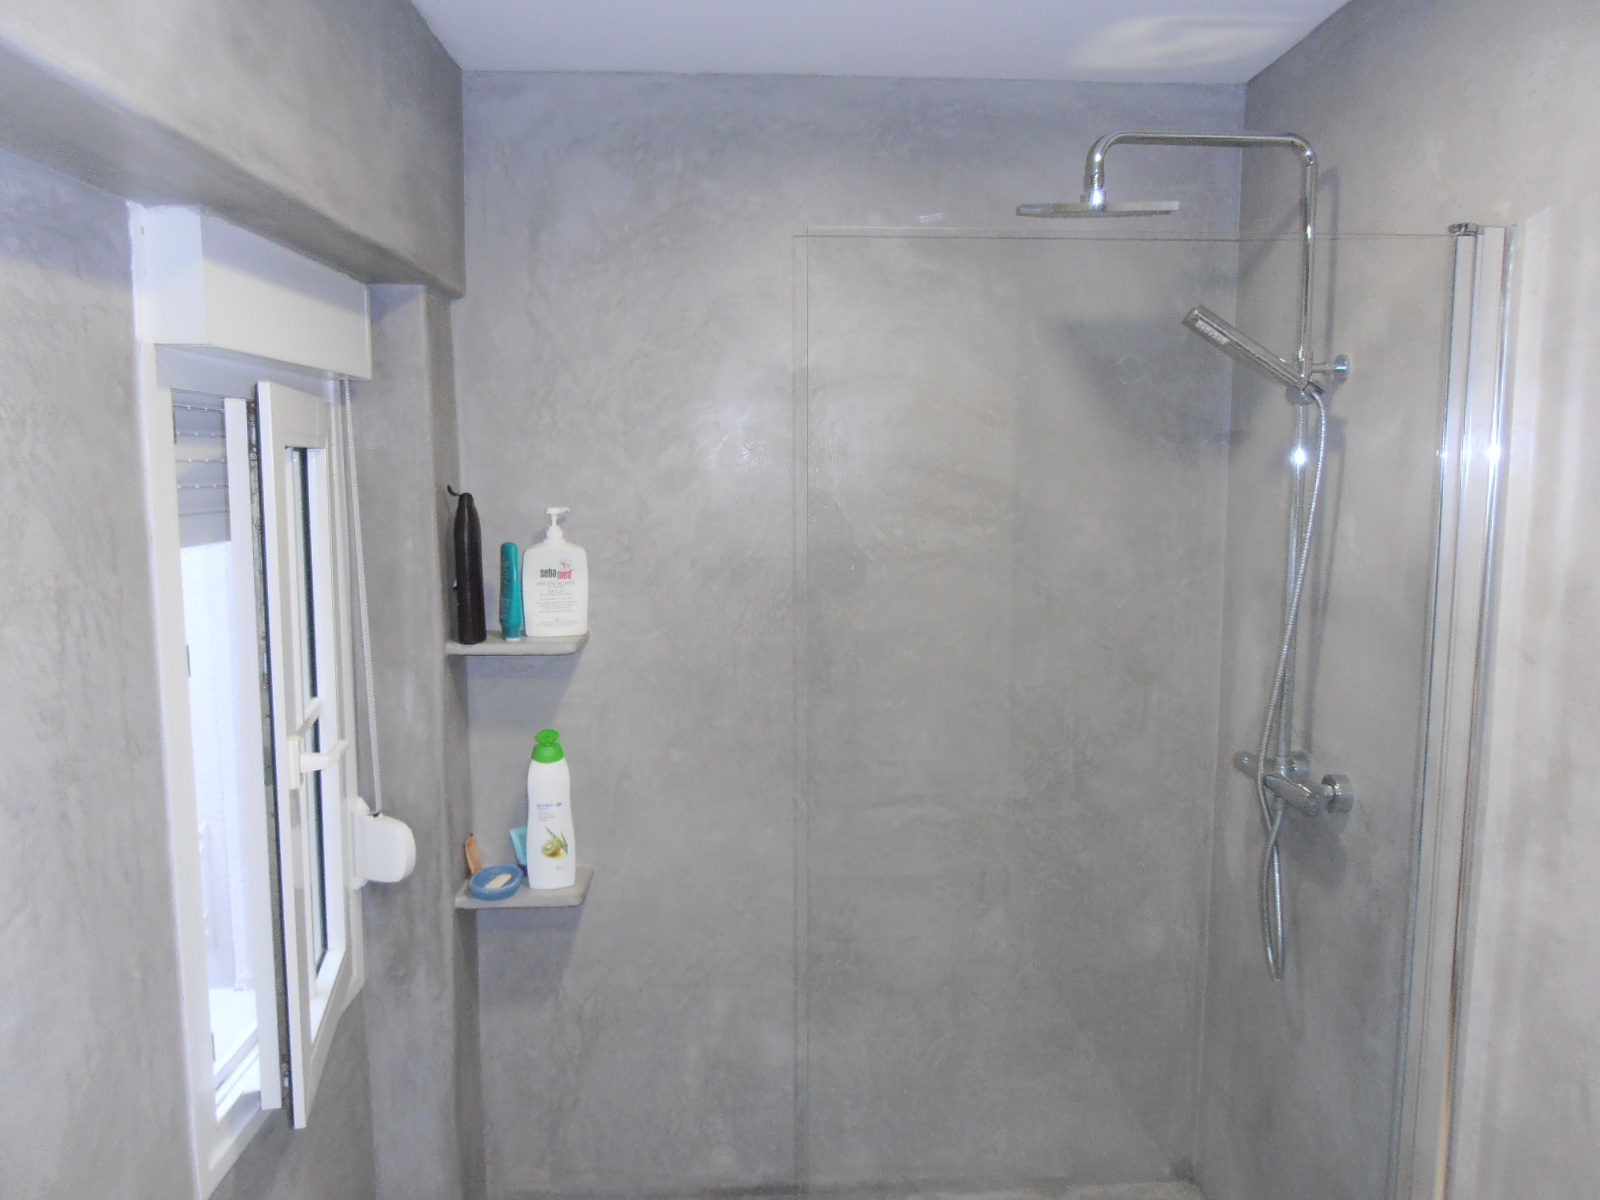 jointless bathroom remodeling, beton optic